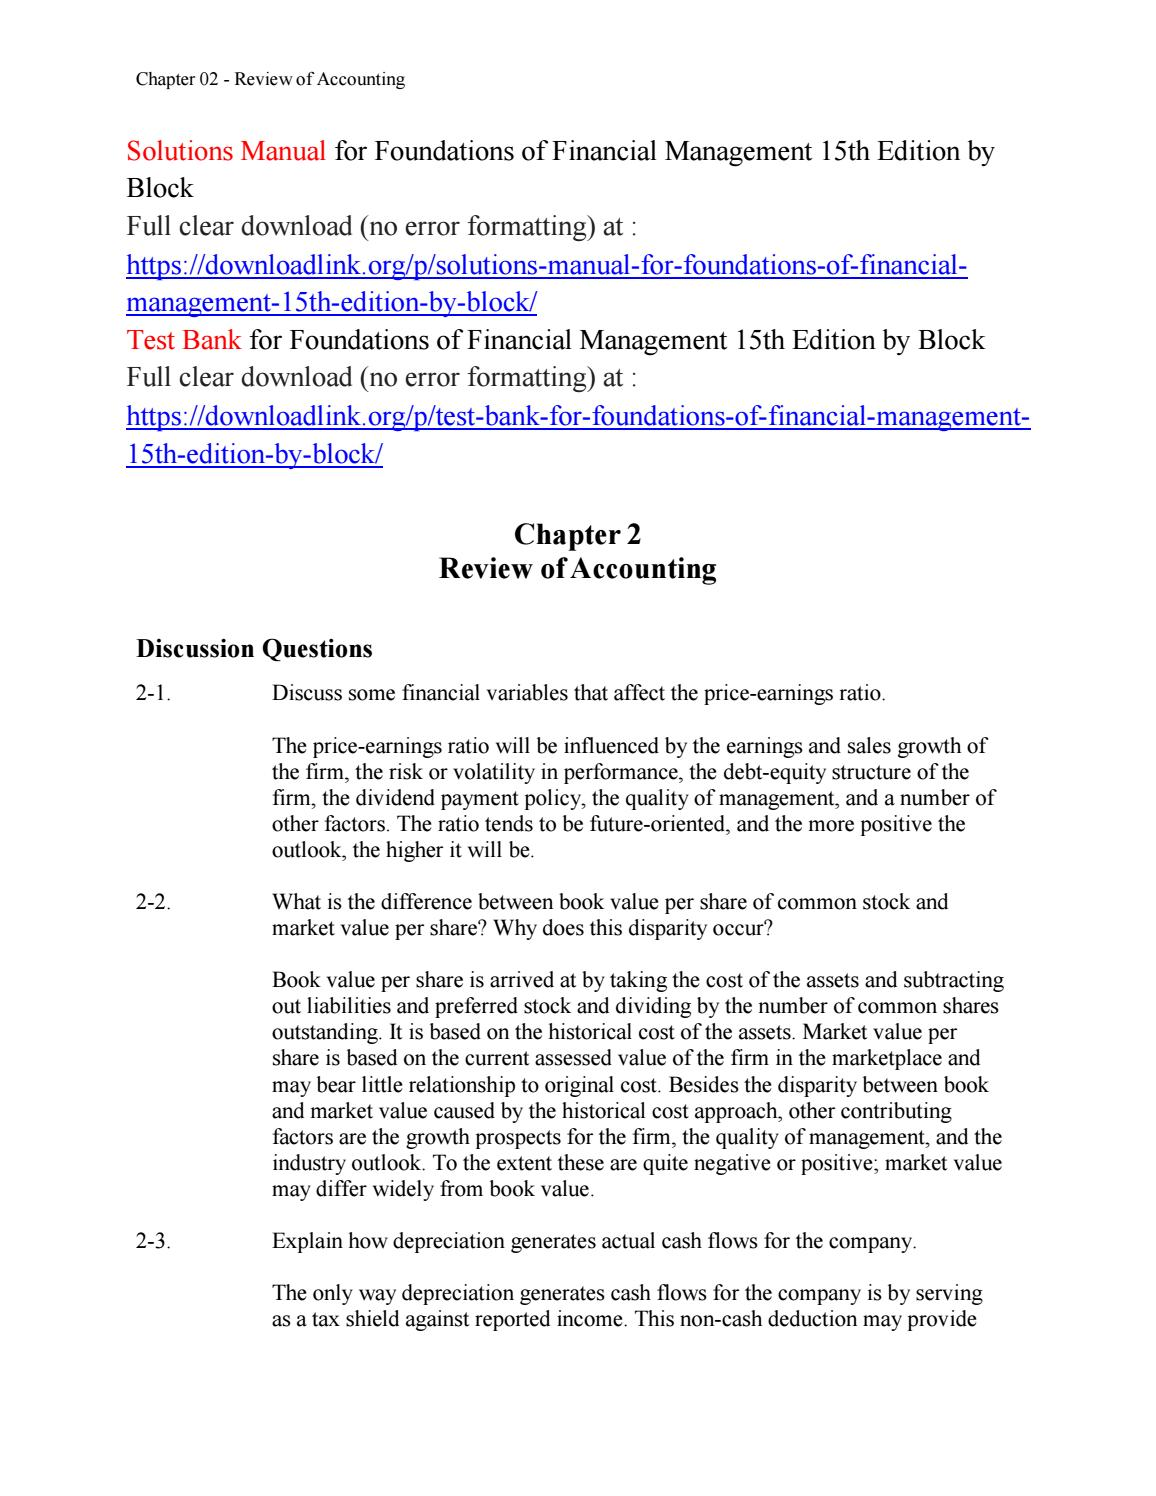 Solutions Manual for Foundations of Financial Management 15th Edition by  Block by jack4356 - issuu